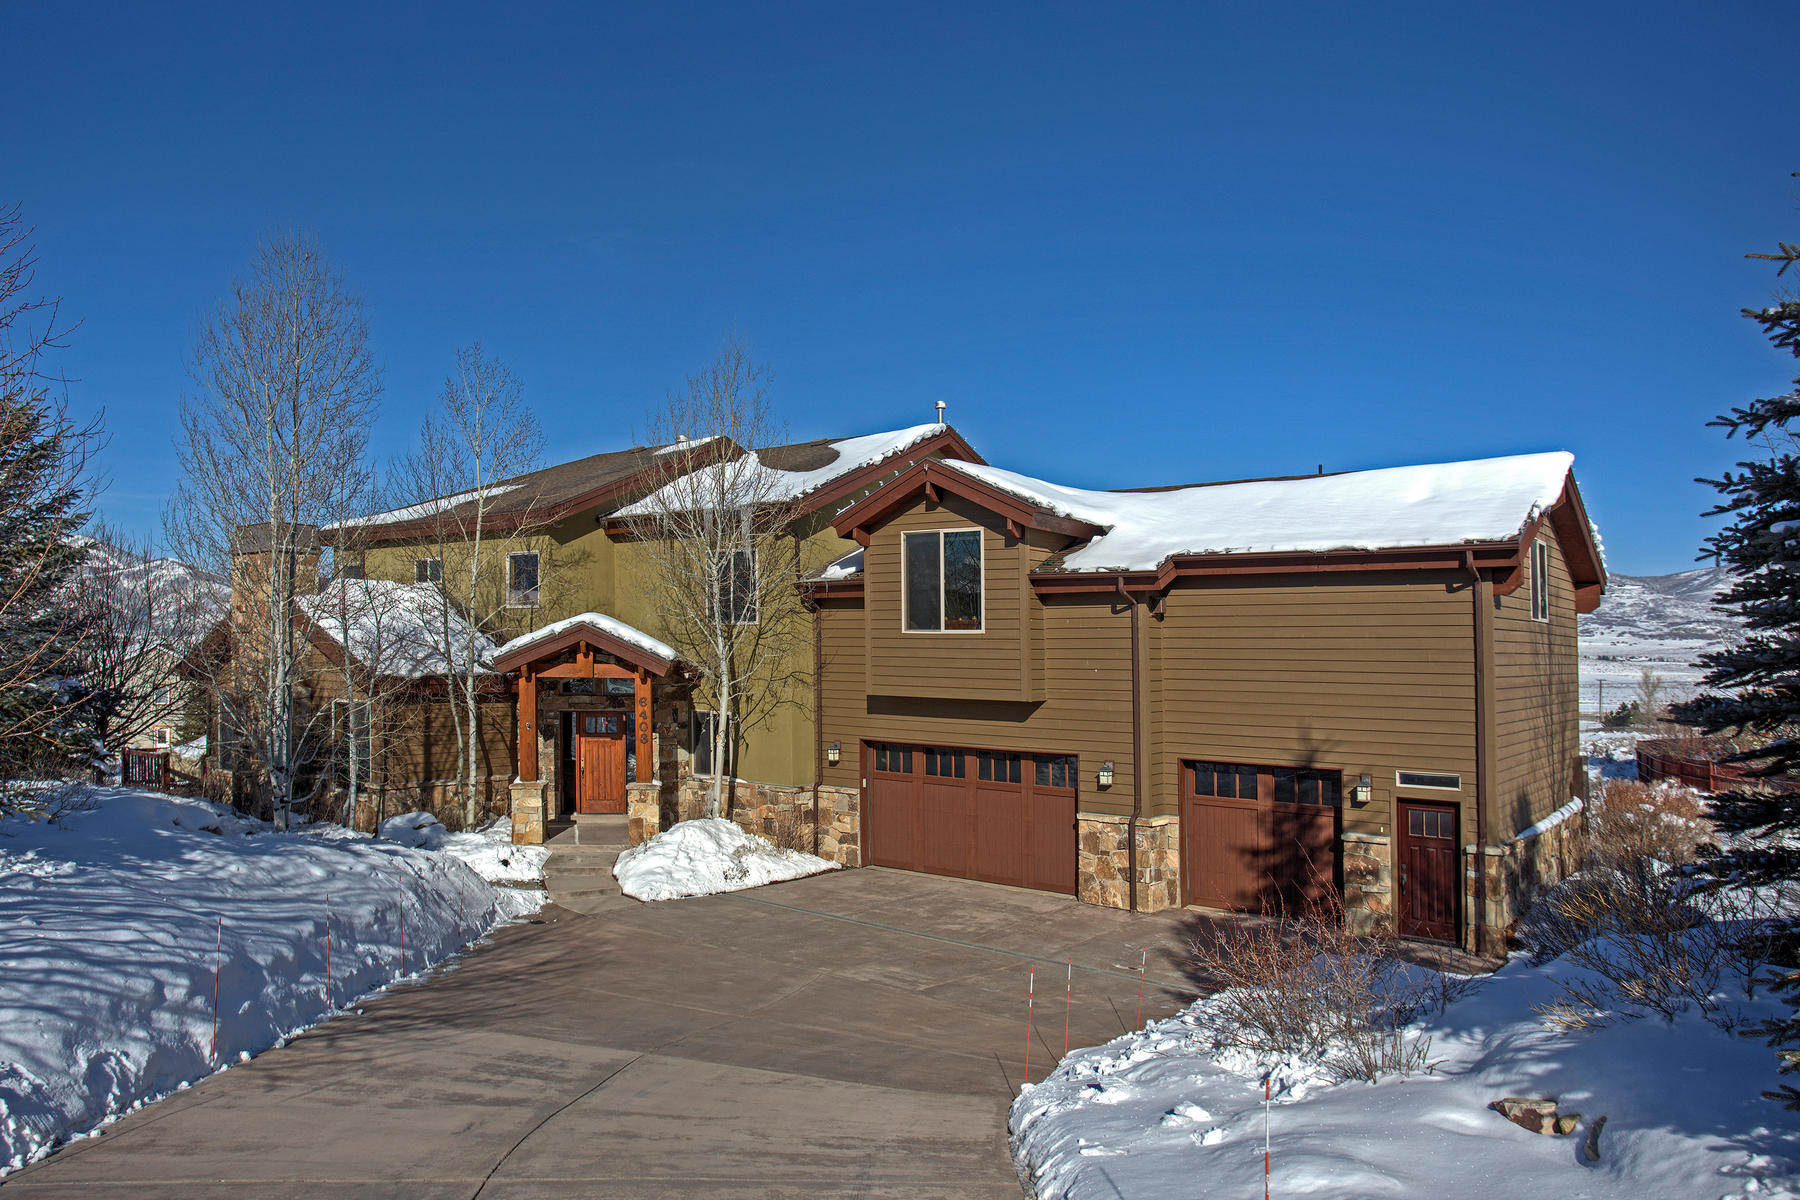 Single Family Home for Sale at Sophisticated Style, Spectacular Ski Resort Views 6403 N Snow View Dr Park City, Utah 84098 United States